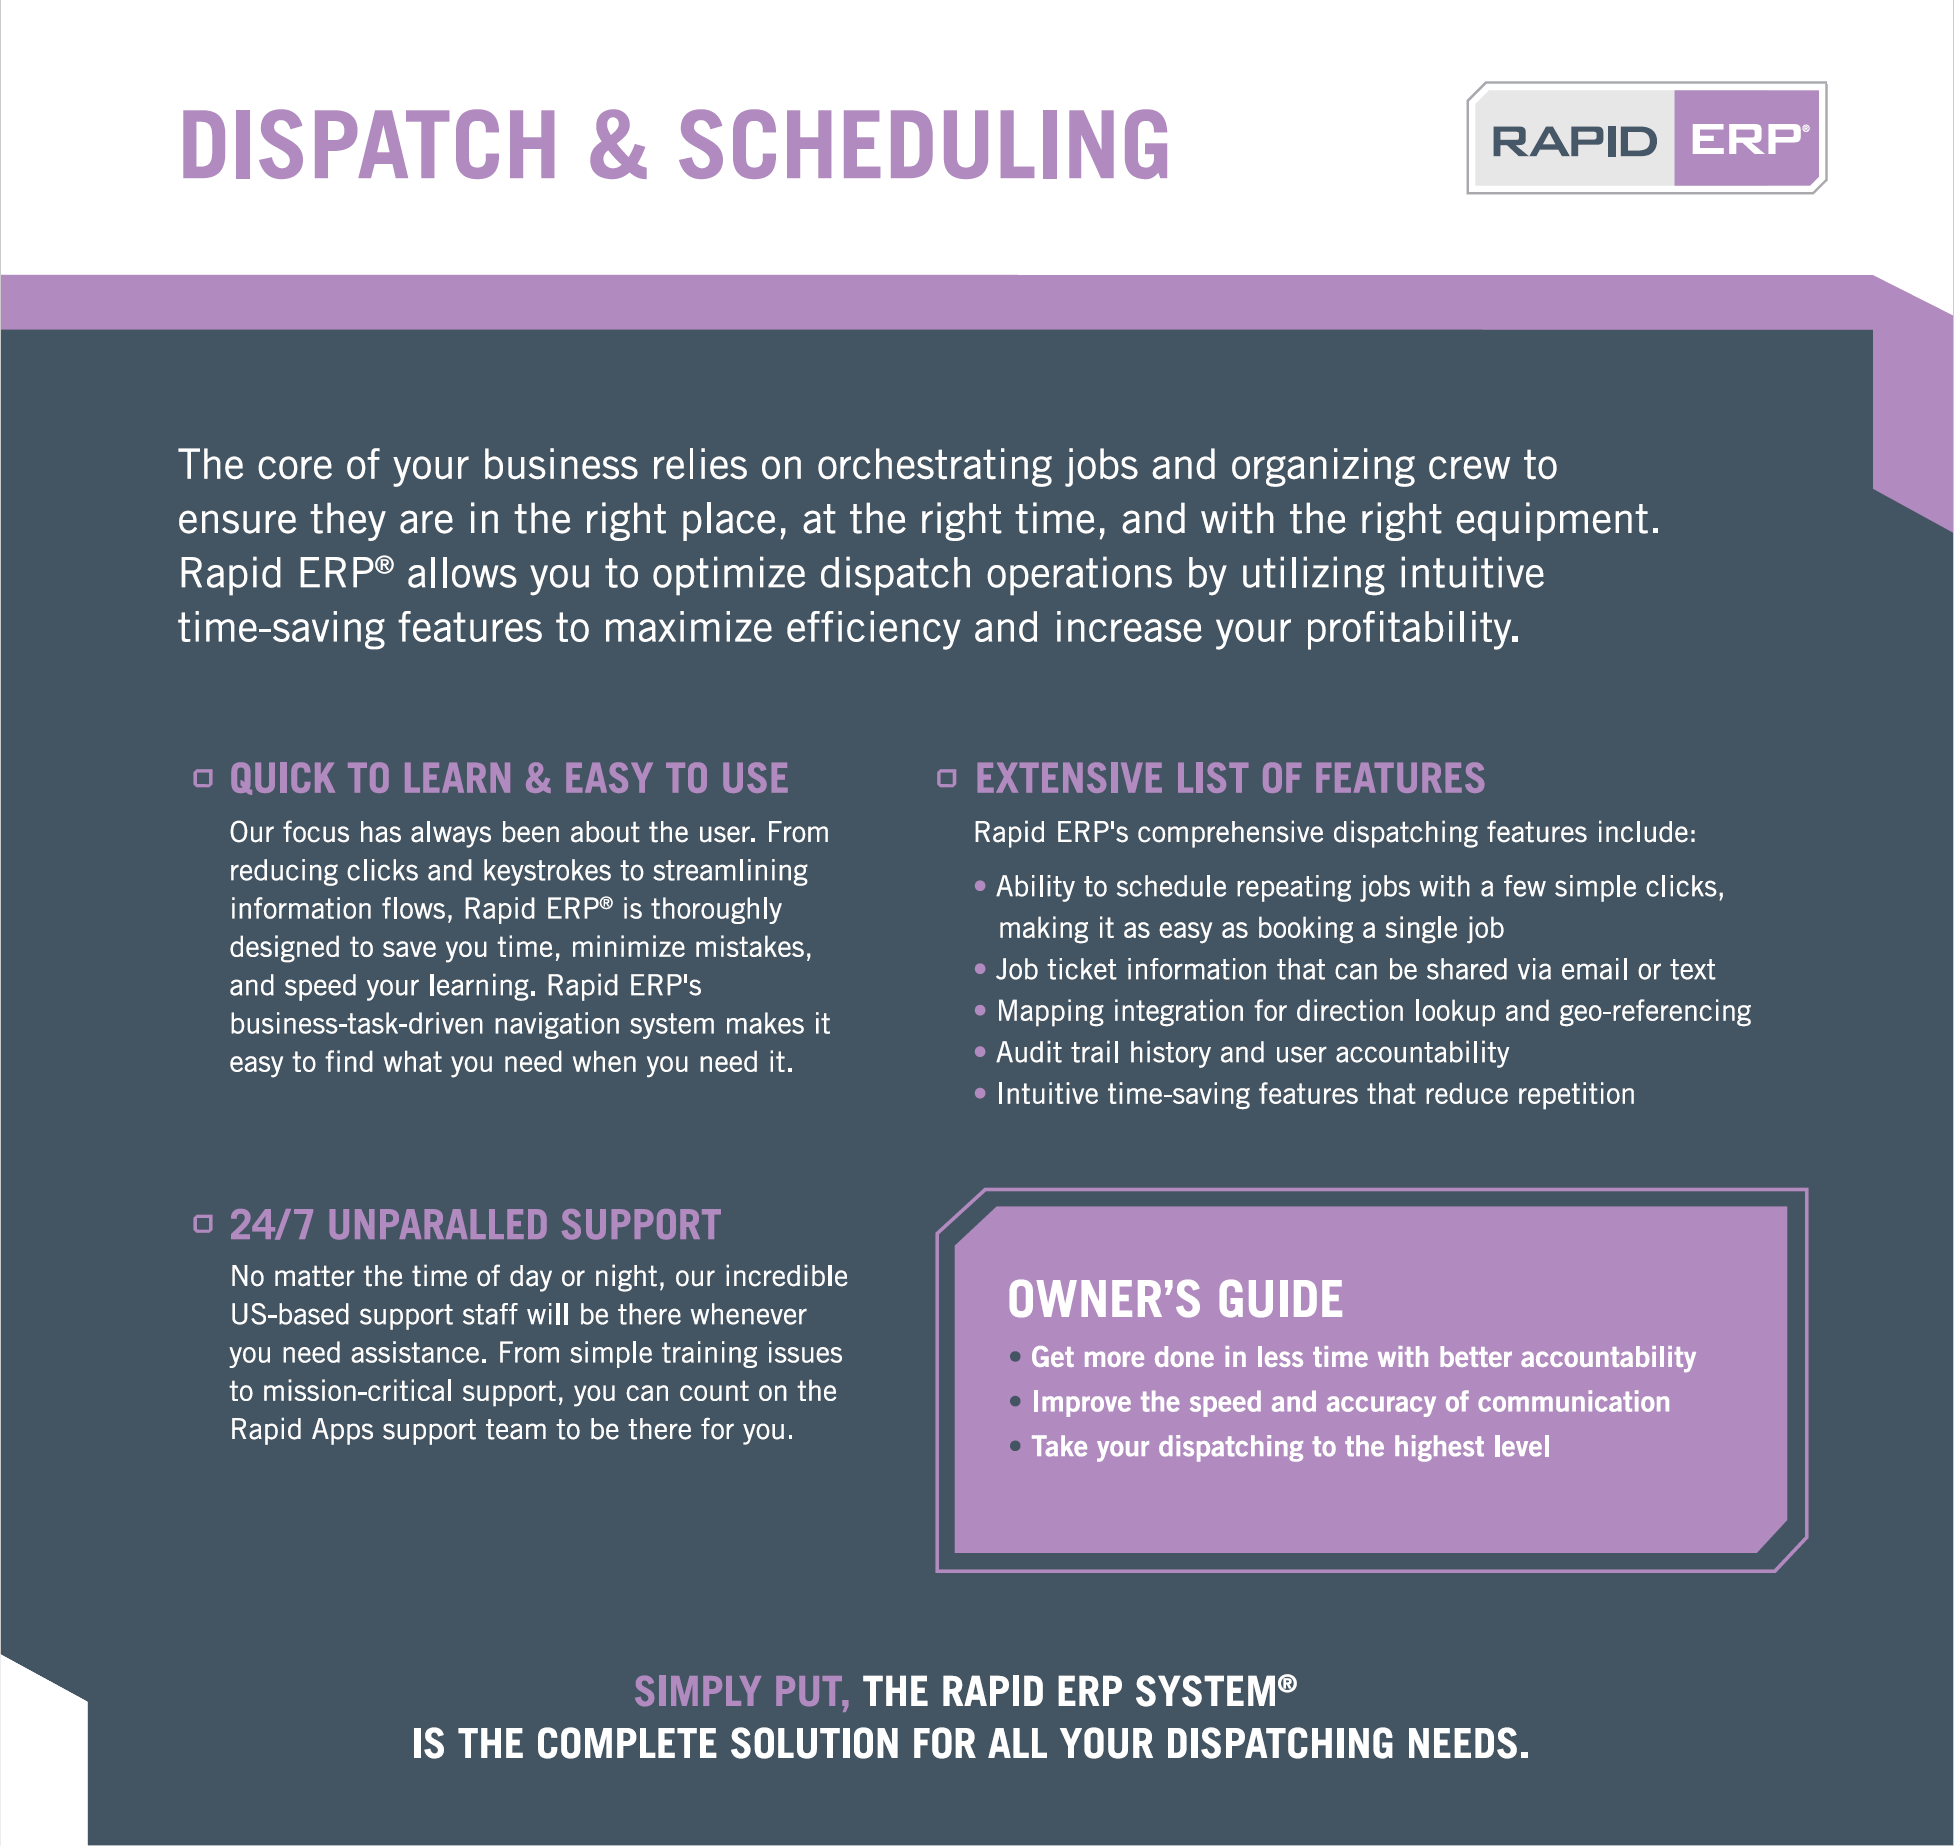 Rapid ERP - Dispatch & Scheduling